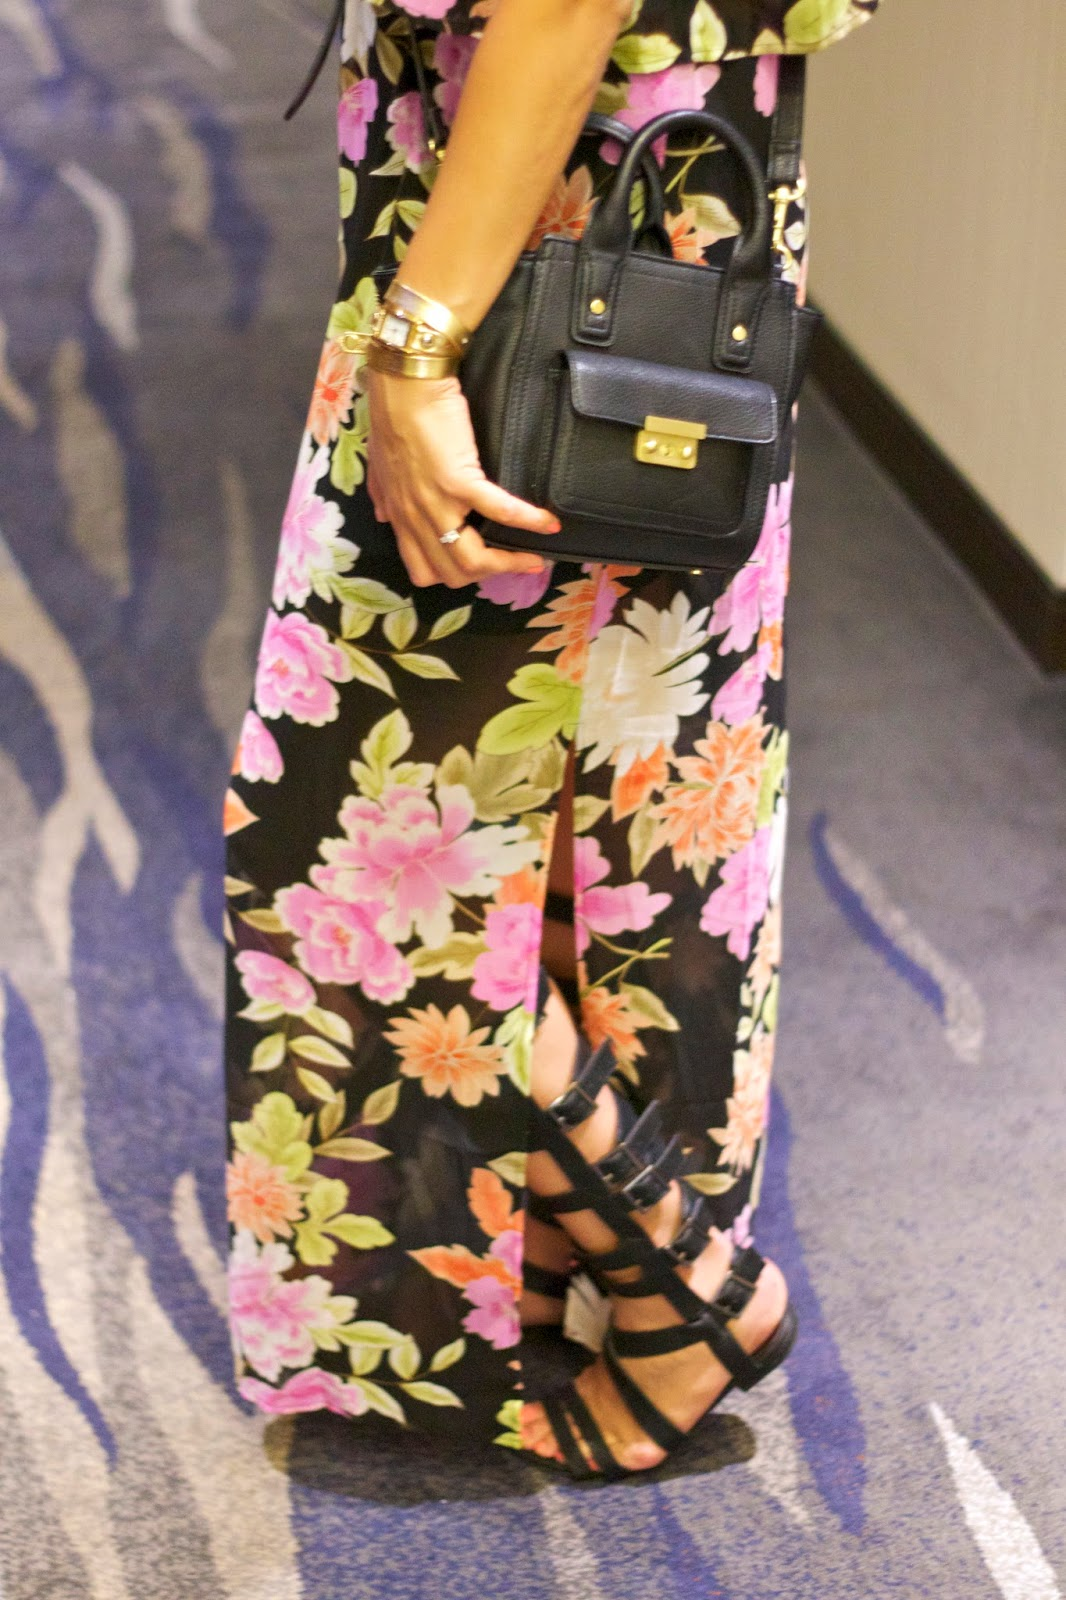 gold la mer watch, la mer wrap around watch, how to wear a floral maxi, floral maxi dress from forever 21, las vegas touristing, hallway of vdara, vdara hotel and spa review